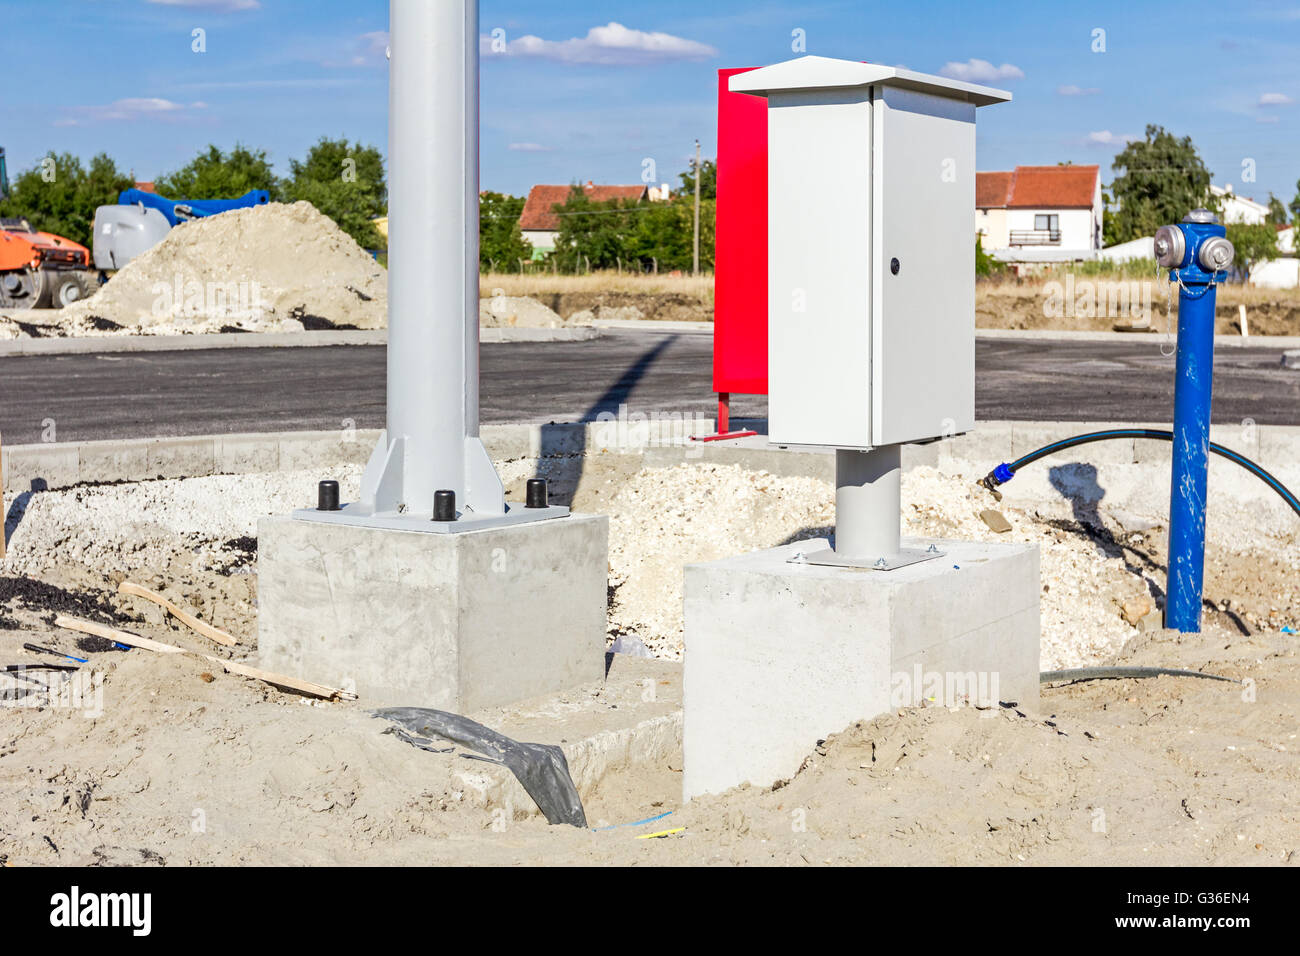 Fuse Cabinet Stock Photos Images Alamy Box Pipe New Small Distribution On Construction Site Next To The Pole Base And Hydrant